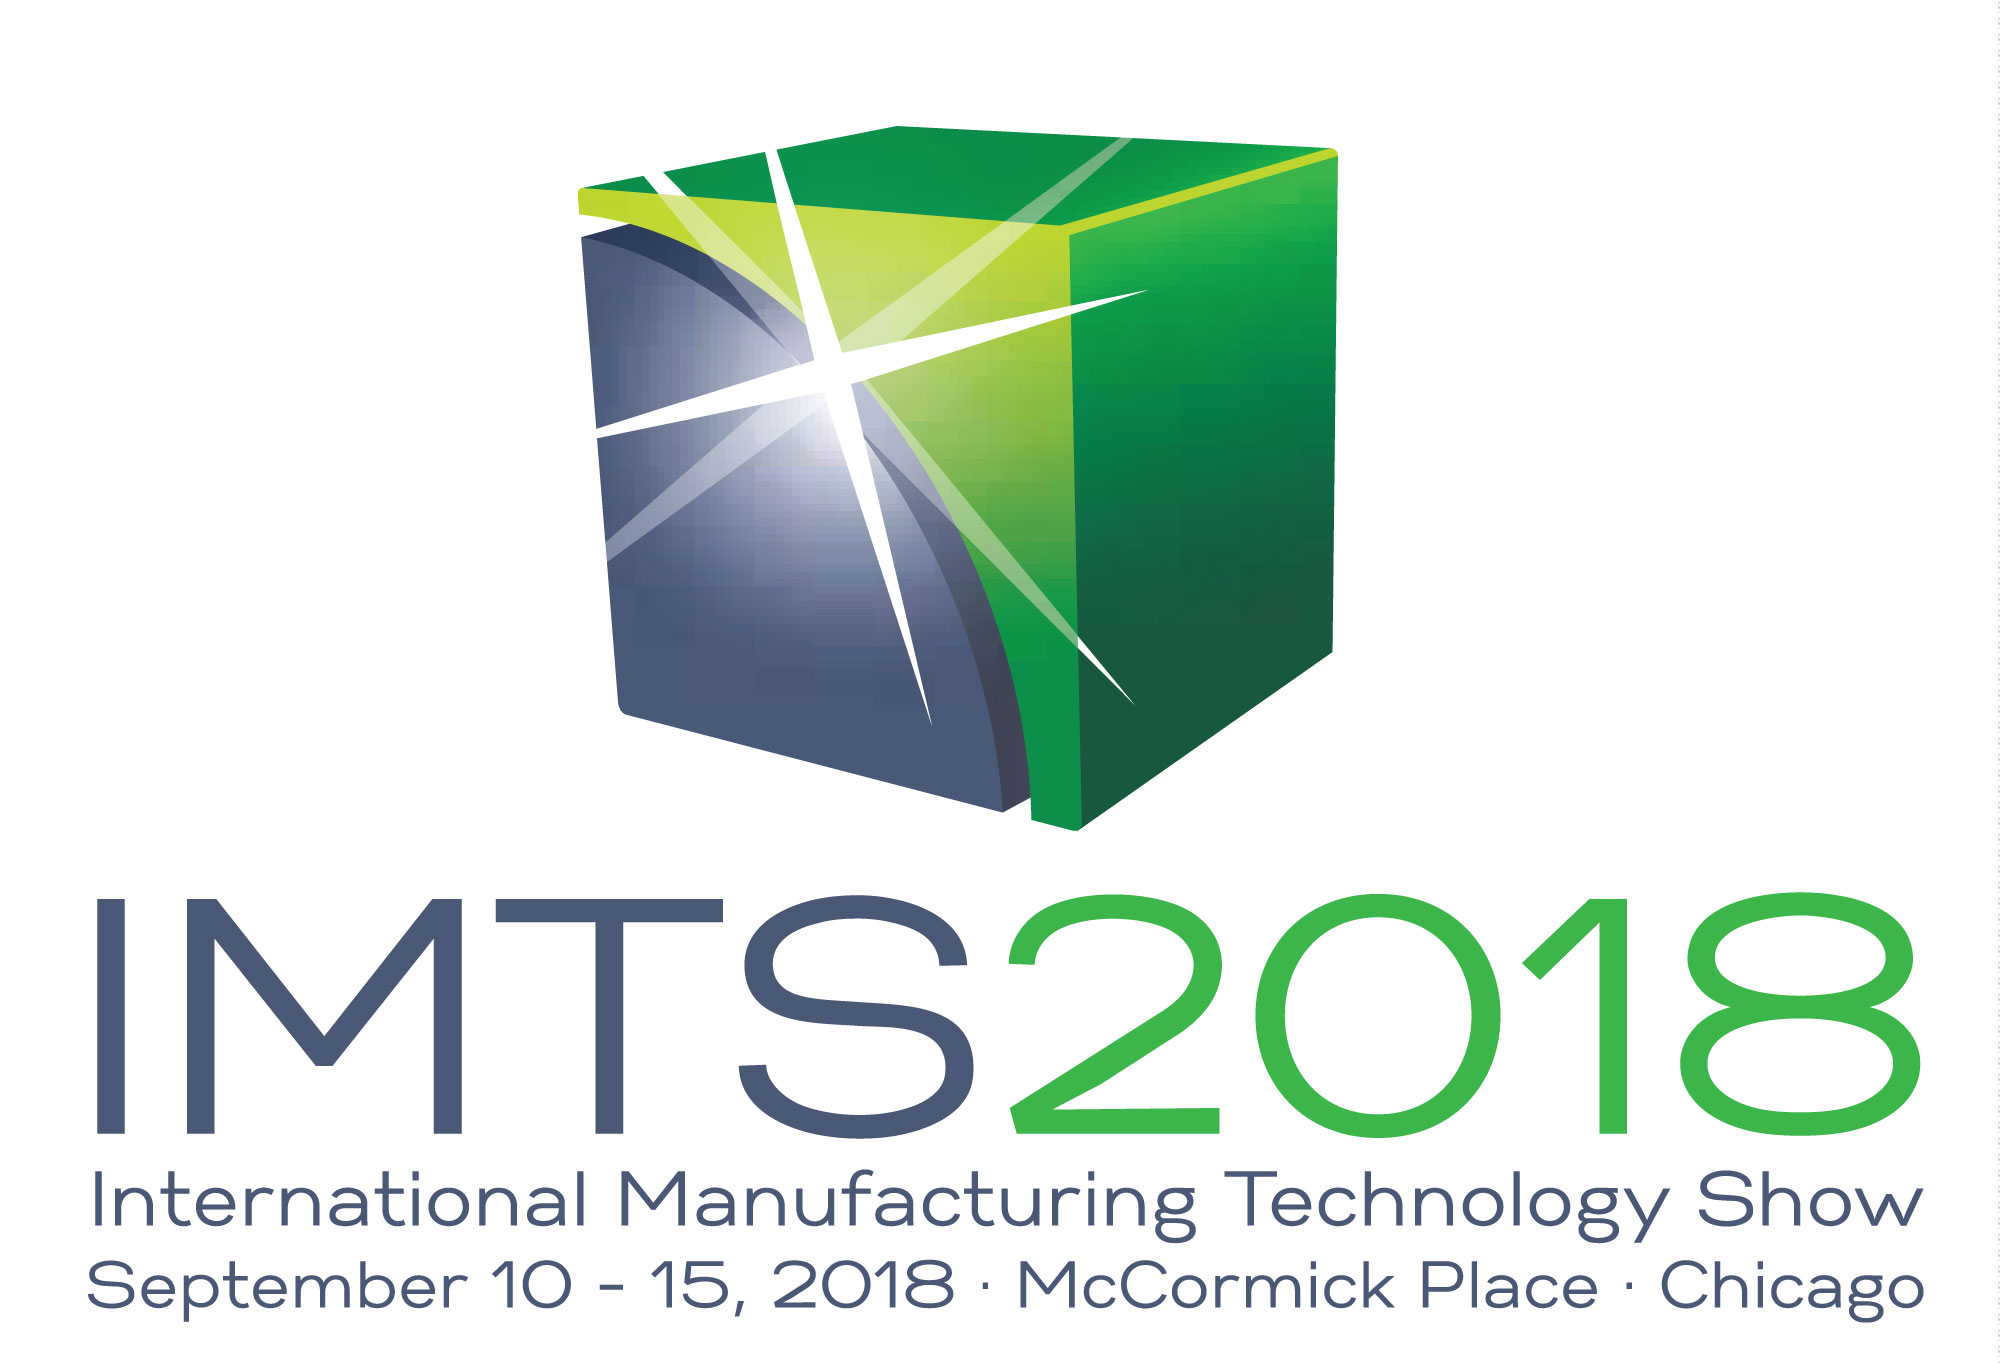 IMTS 2018 QUESTION & ANSWER